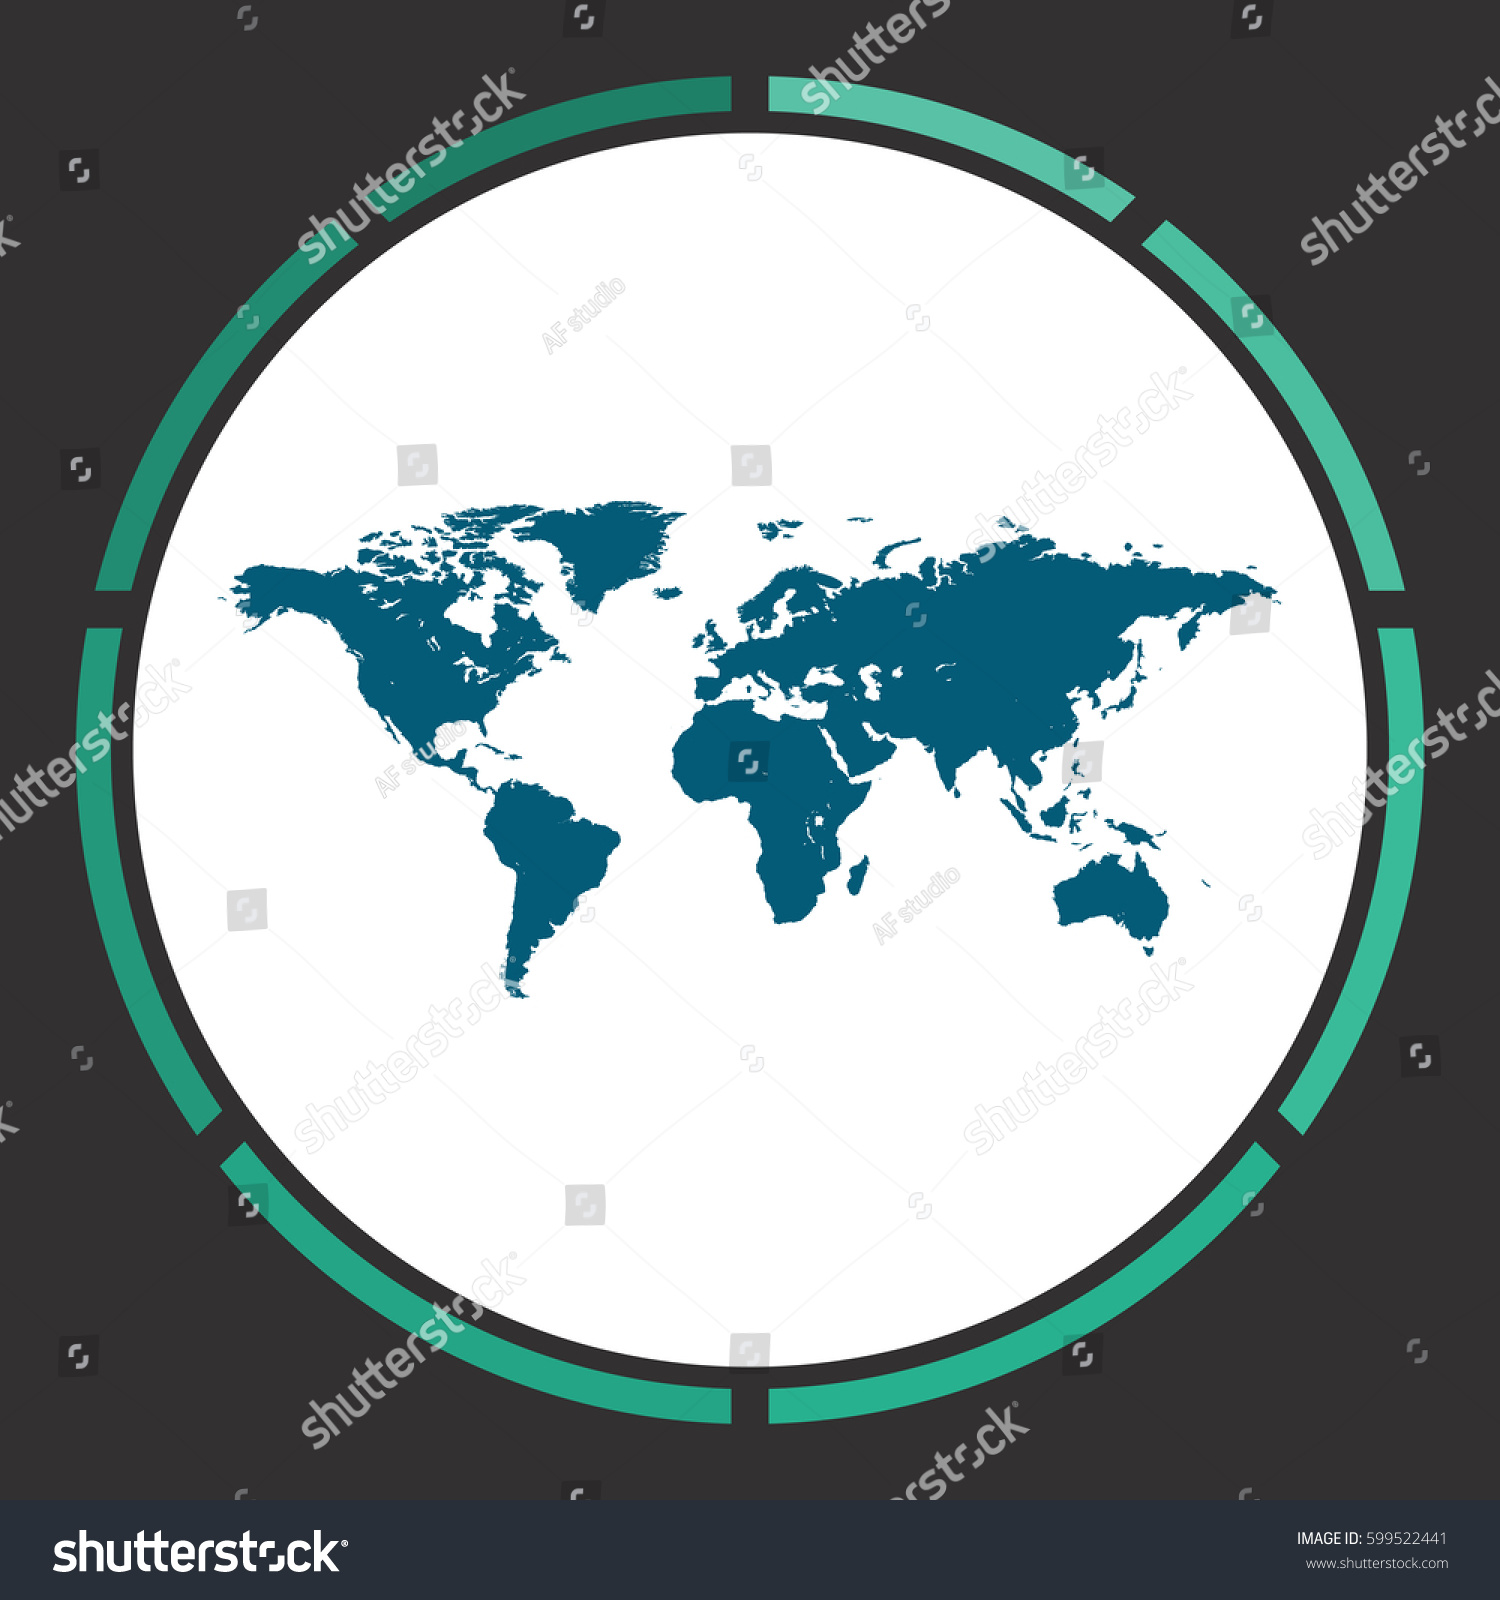 World map icon vector flat simple vectores en stock 599522441 world map icon vector flat simple blue pictogram in a circle illustration symbol gumiabroncs Gallery